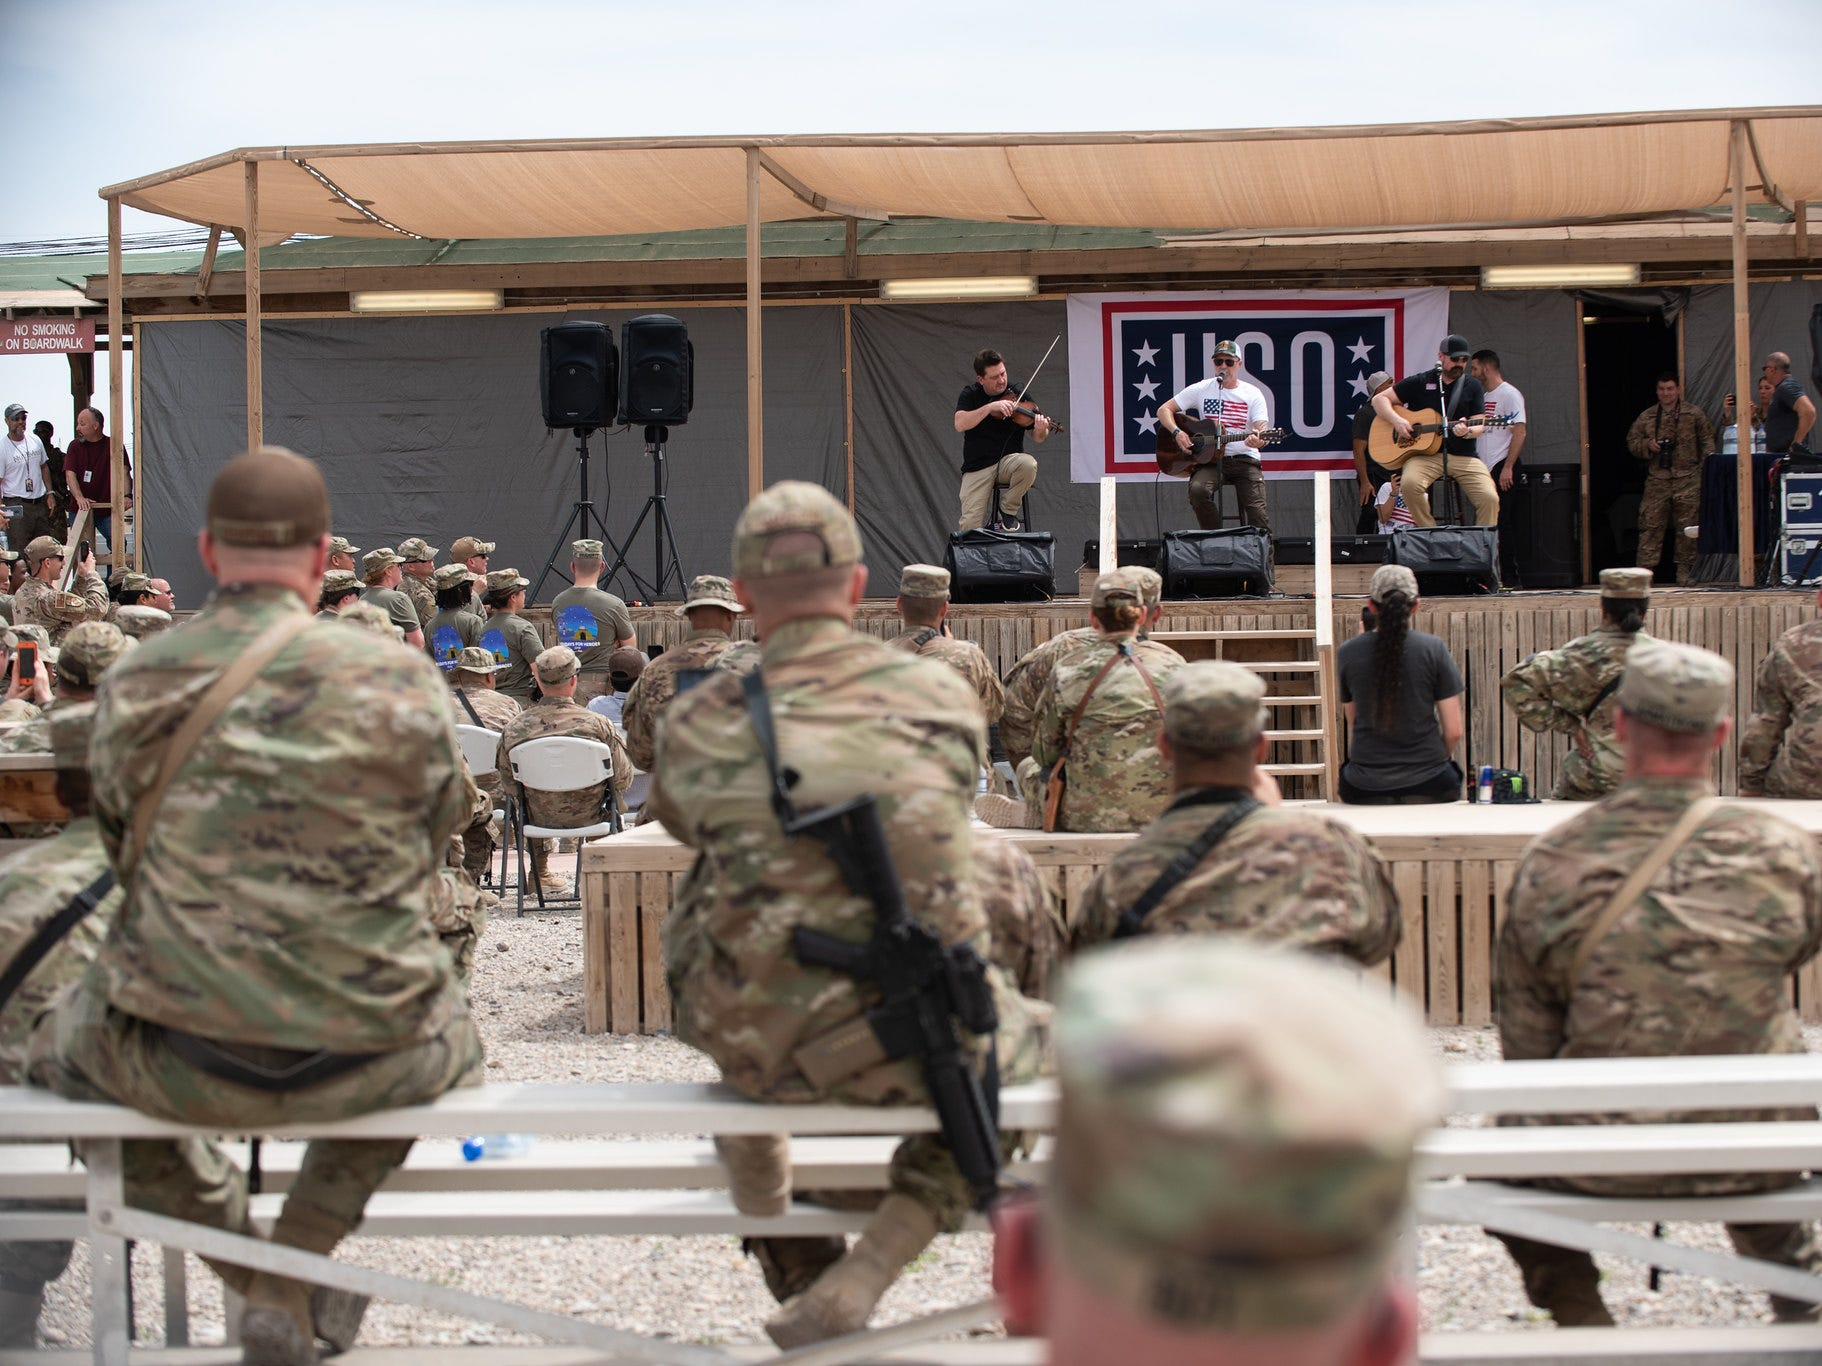 Entertainers and athletes take questions and interact with the audience during a USO Show at Kandahar Airfield, Afghanistan; the third stop on the annual Vice Chairman's USO Tour, April 1, 2019. Country music artist Craig Morgan, celebrity chef Robert Irvine, UFC Hall of Famer BJ Penn, former UFC Middleweight champion Chris Weidman, professional mixed martial artist Felice Herrig, two-time MLB World Series champion Shane Victorino; and professional surfer Makua Rothman joined Air Force Gen. Paul J. Selva, vice chairman of the Joint Chiefs of Staff, on a tour across the world.